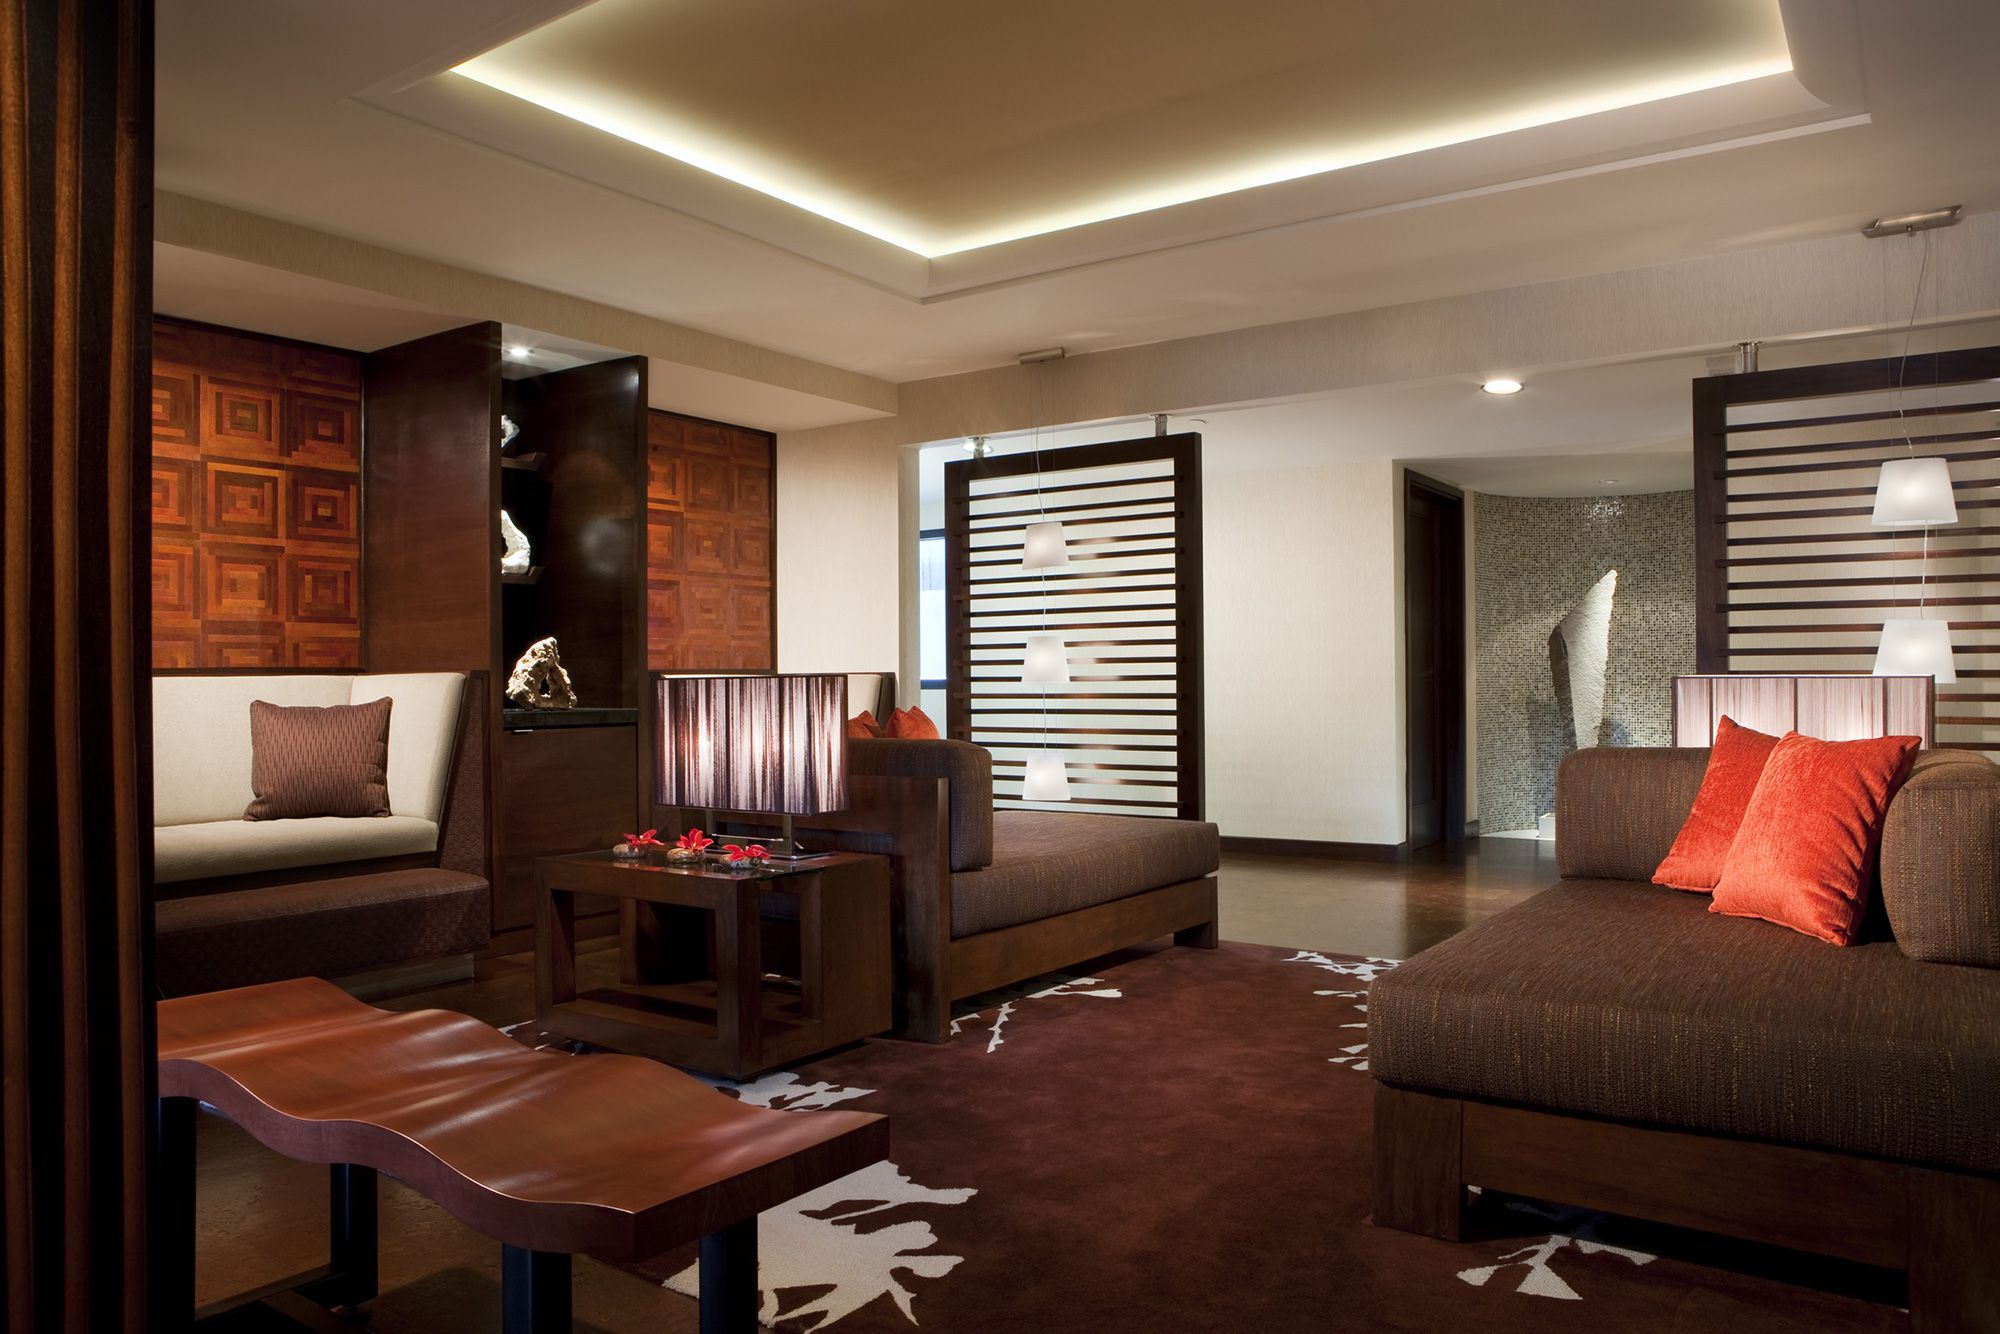 Indidesign accista spa for Relaxation room ideas